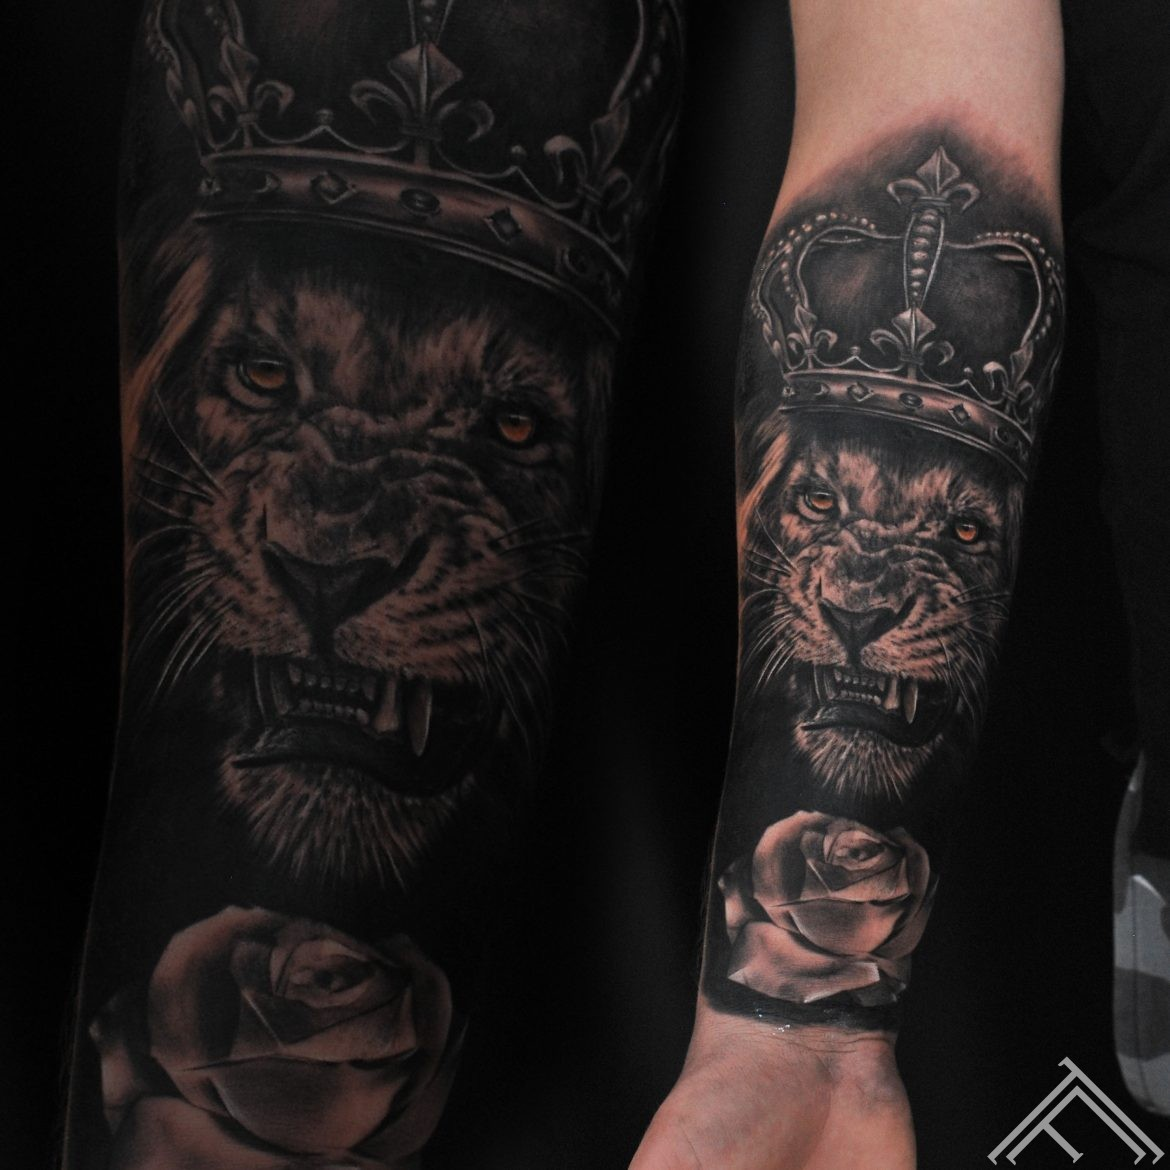 janisanderson-tattoo-lion-tattoofrequency-bezudz